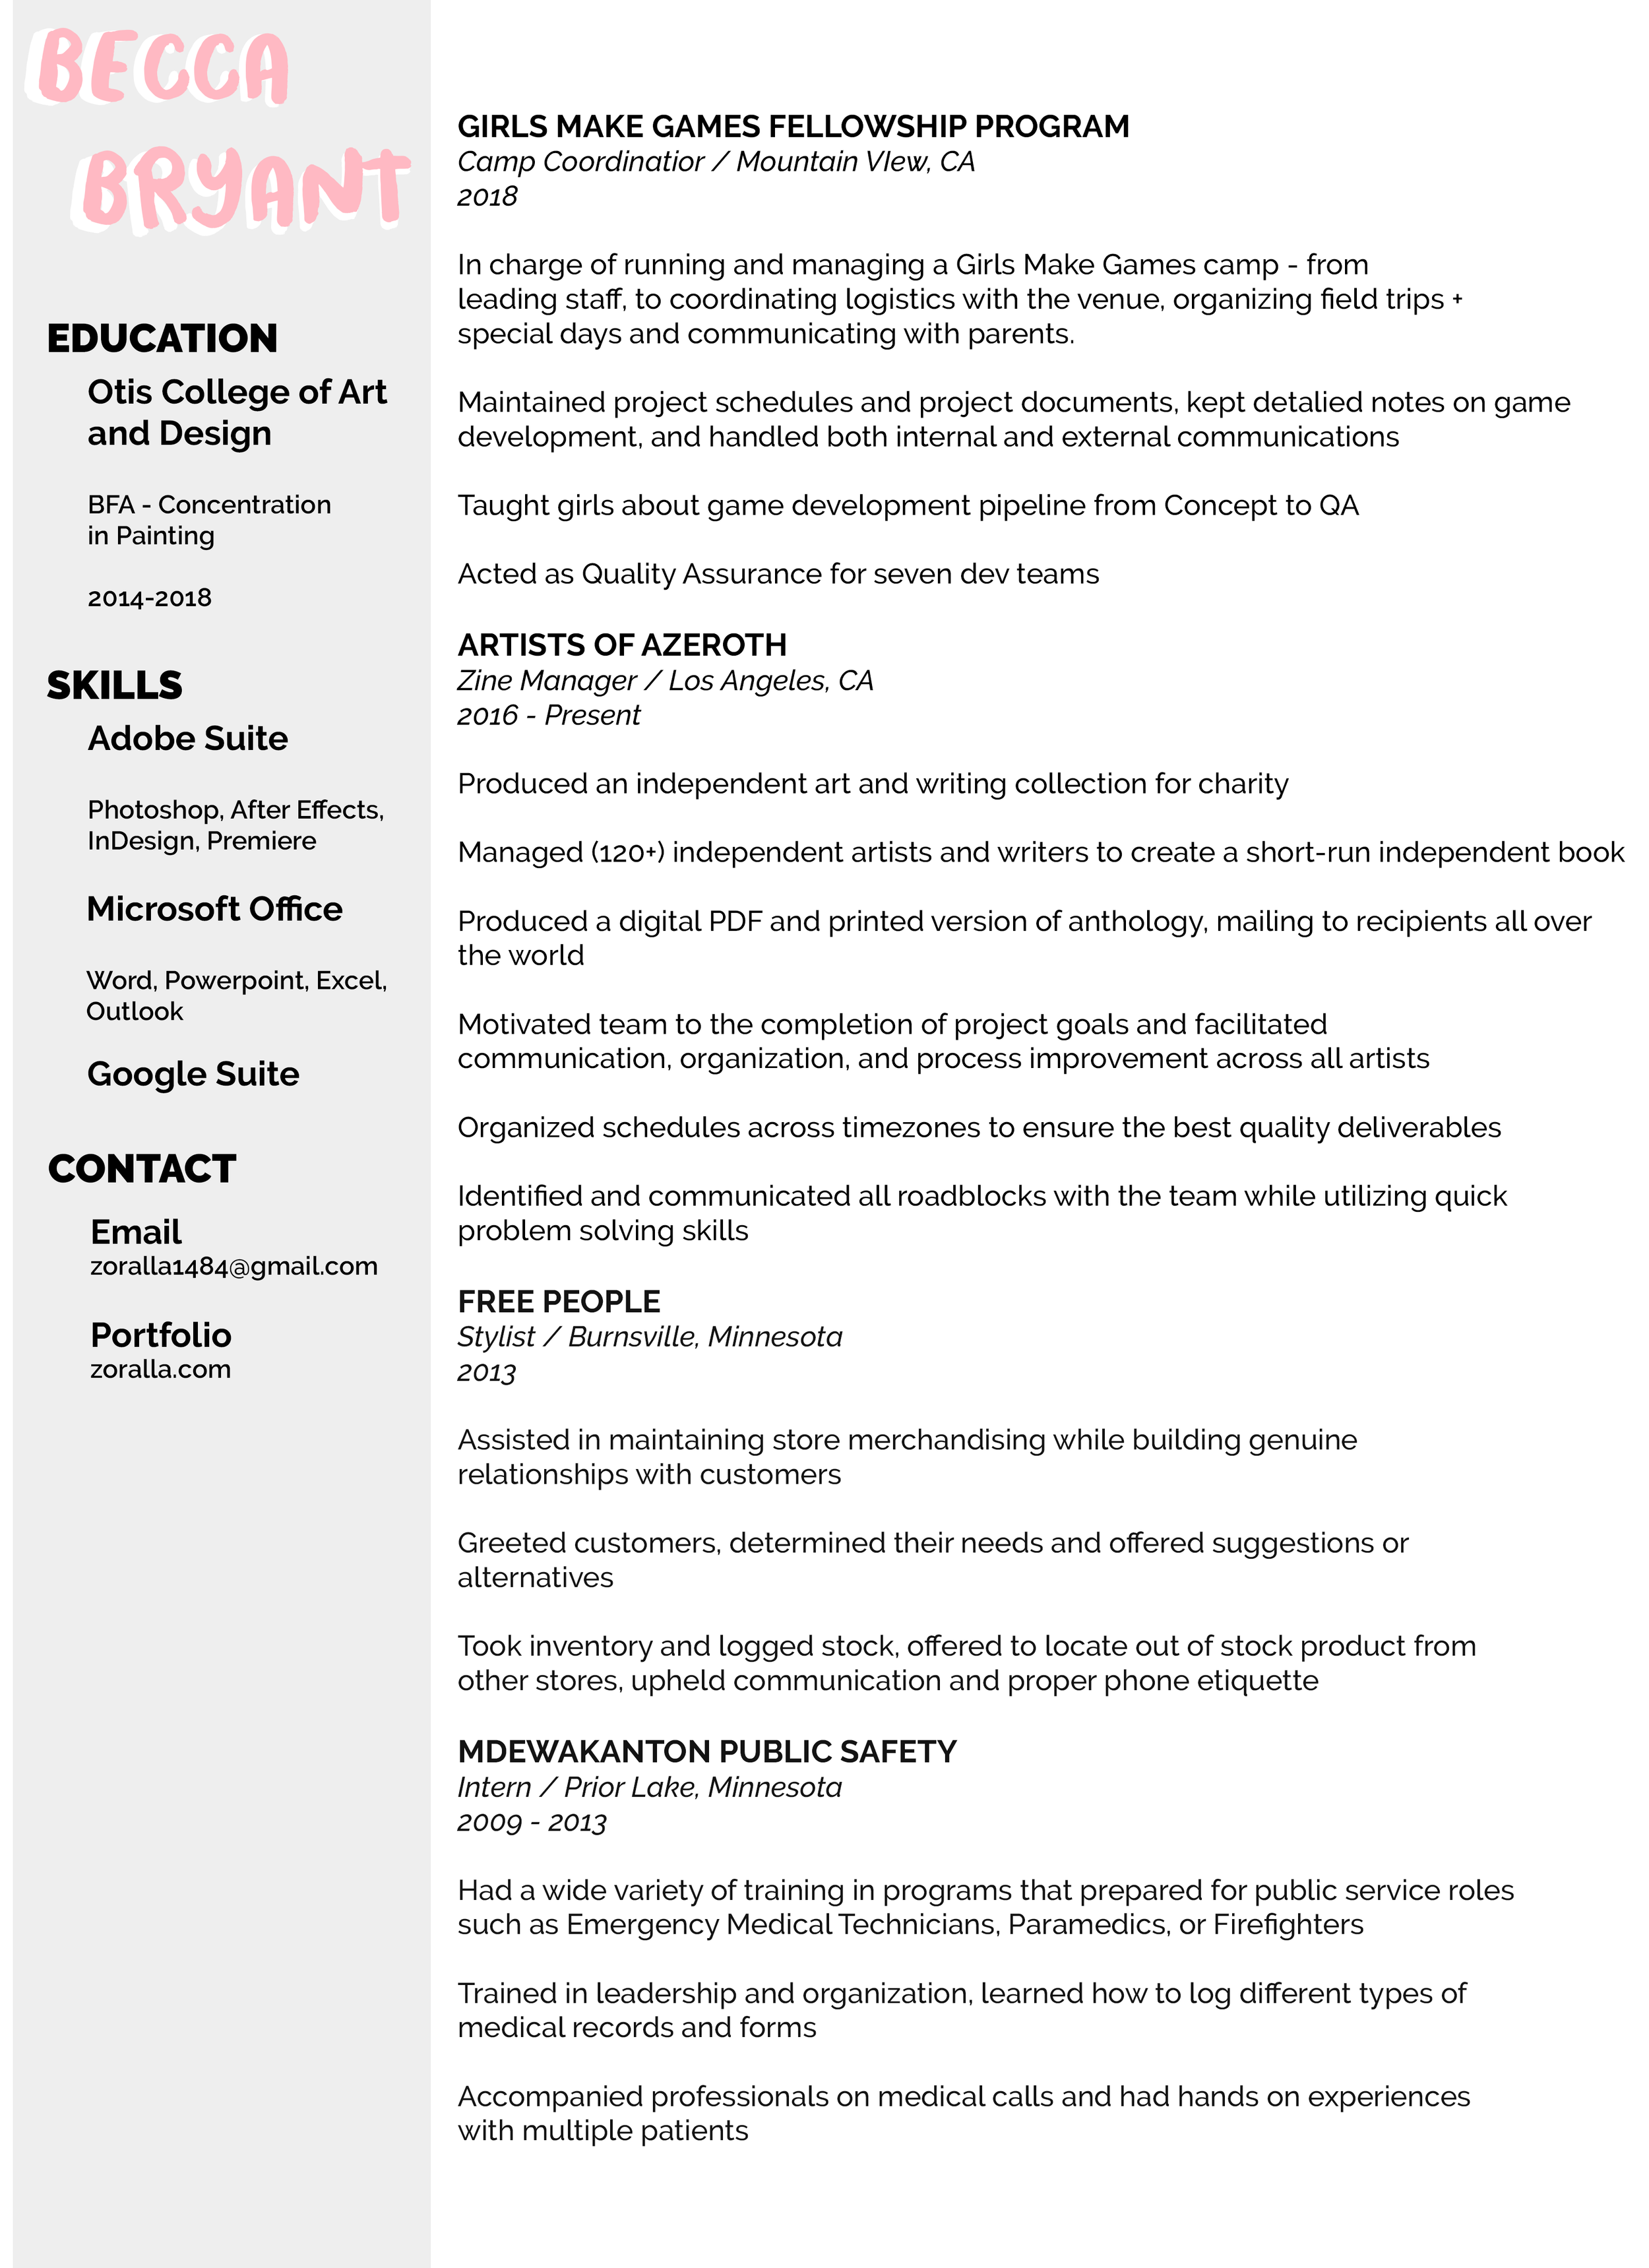 beccabryant_resume2019 1.03.00 PM.png